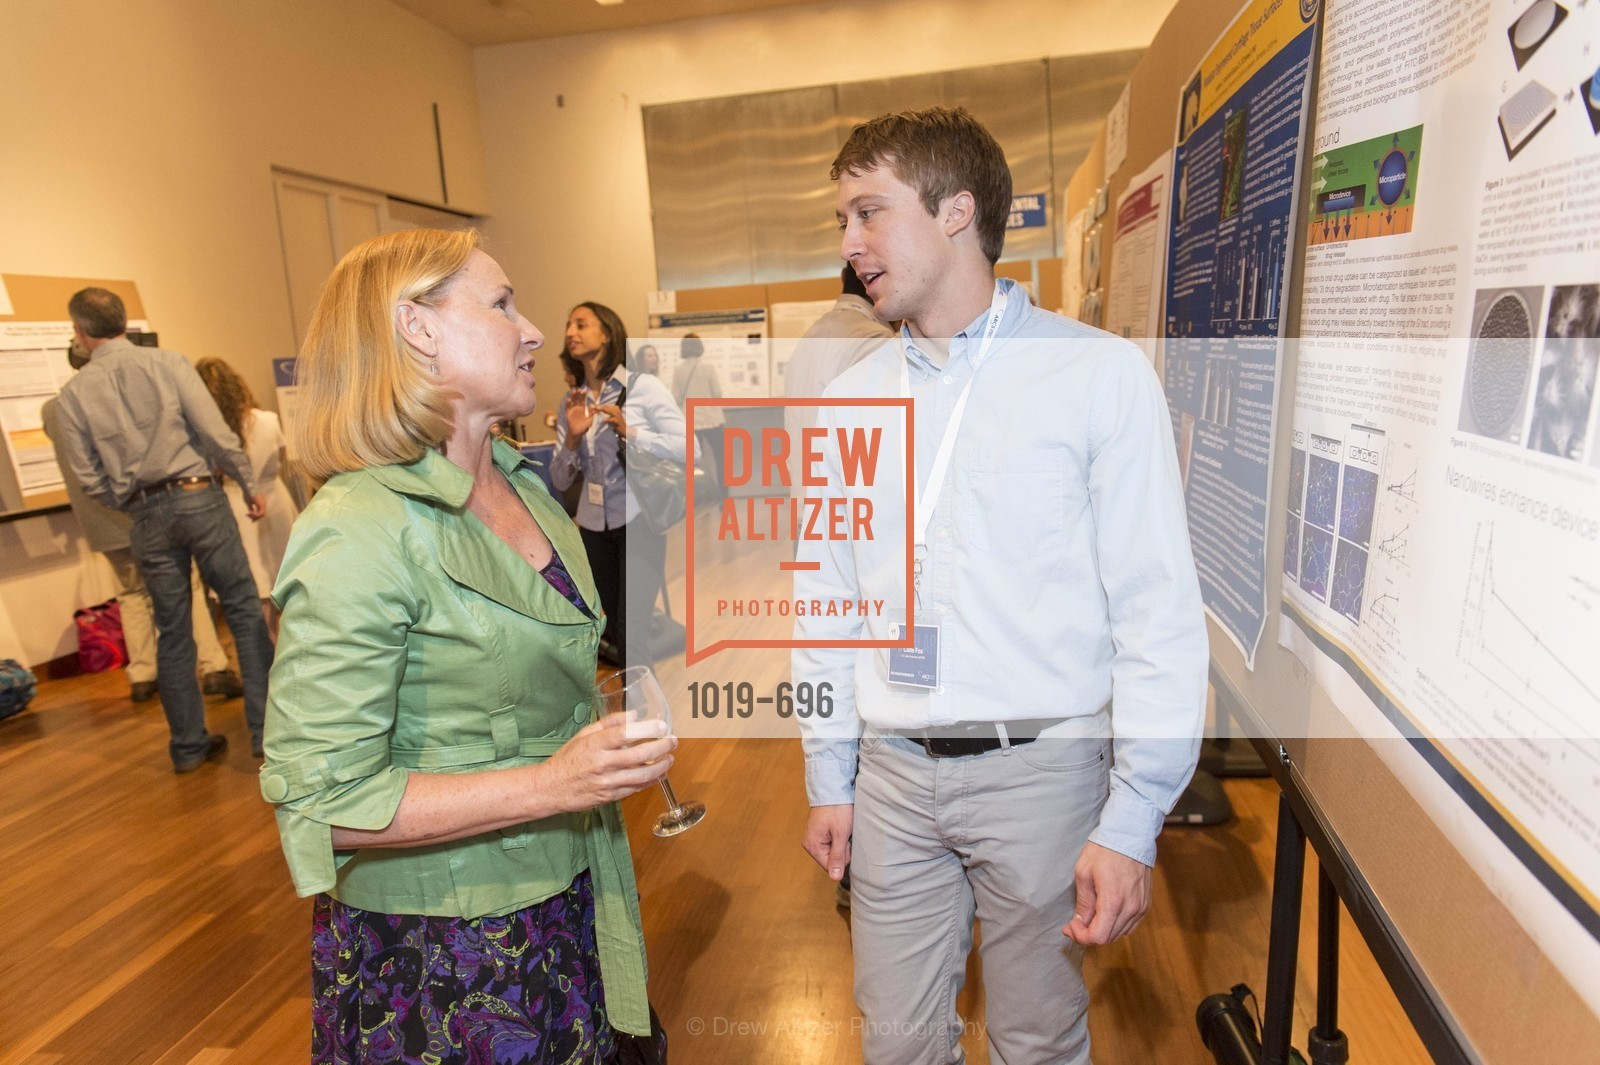 Kathy Crane Moley, Cade Fox, ARCS FOUNDATION Scholar Symposium, US, May 5th, 2015,Drew Altizer, Drew Altizer Photography, full-service agency, private events, San Francisco photographer, photographer california